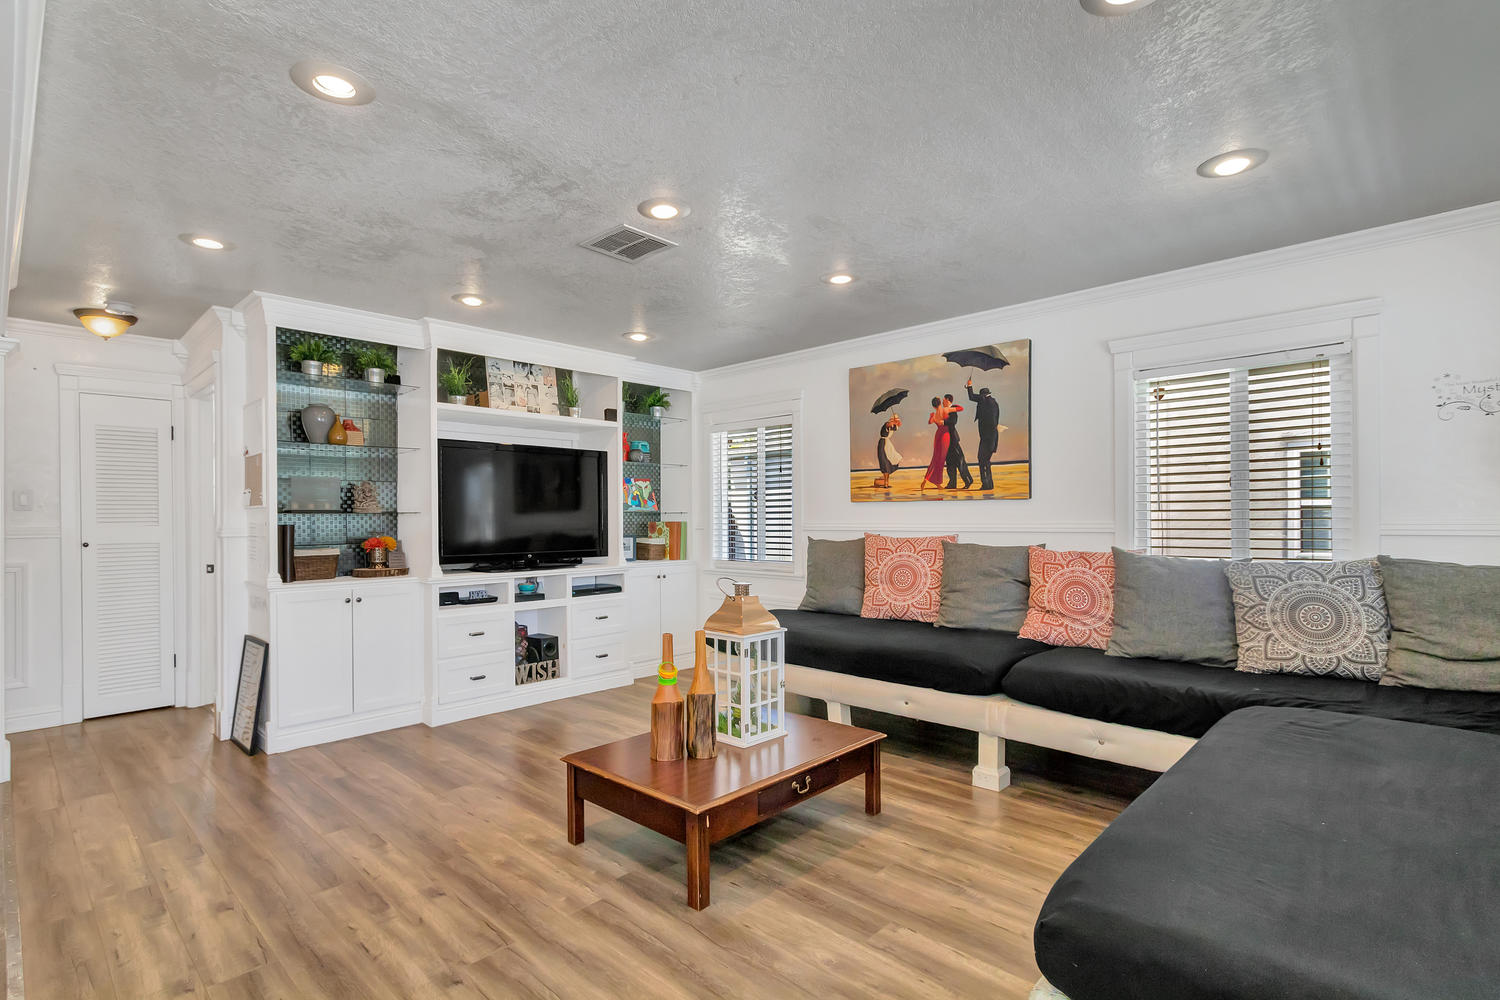 Family room features recessed lighting & built-in media center.